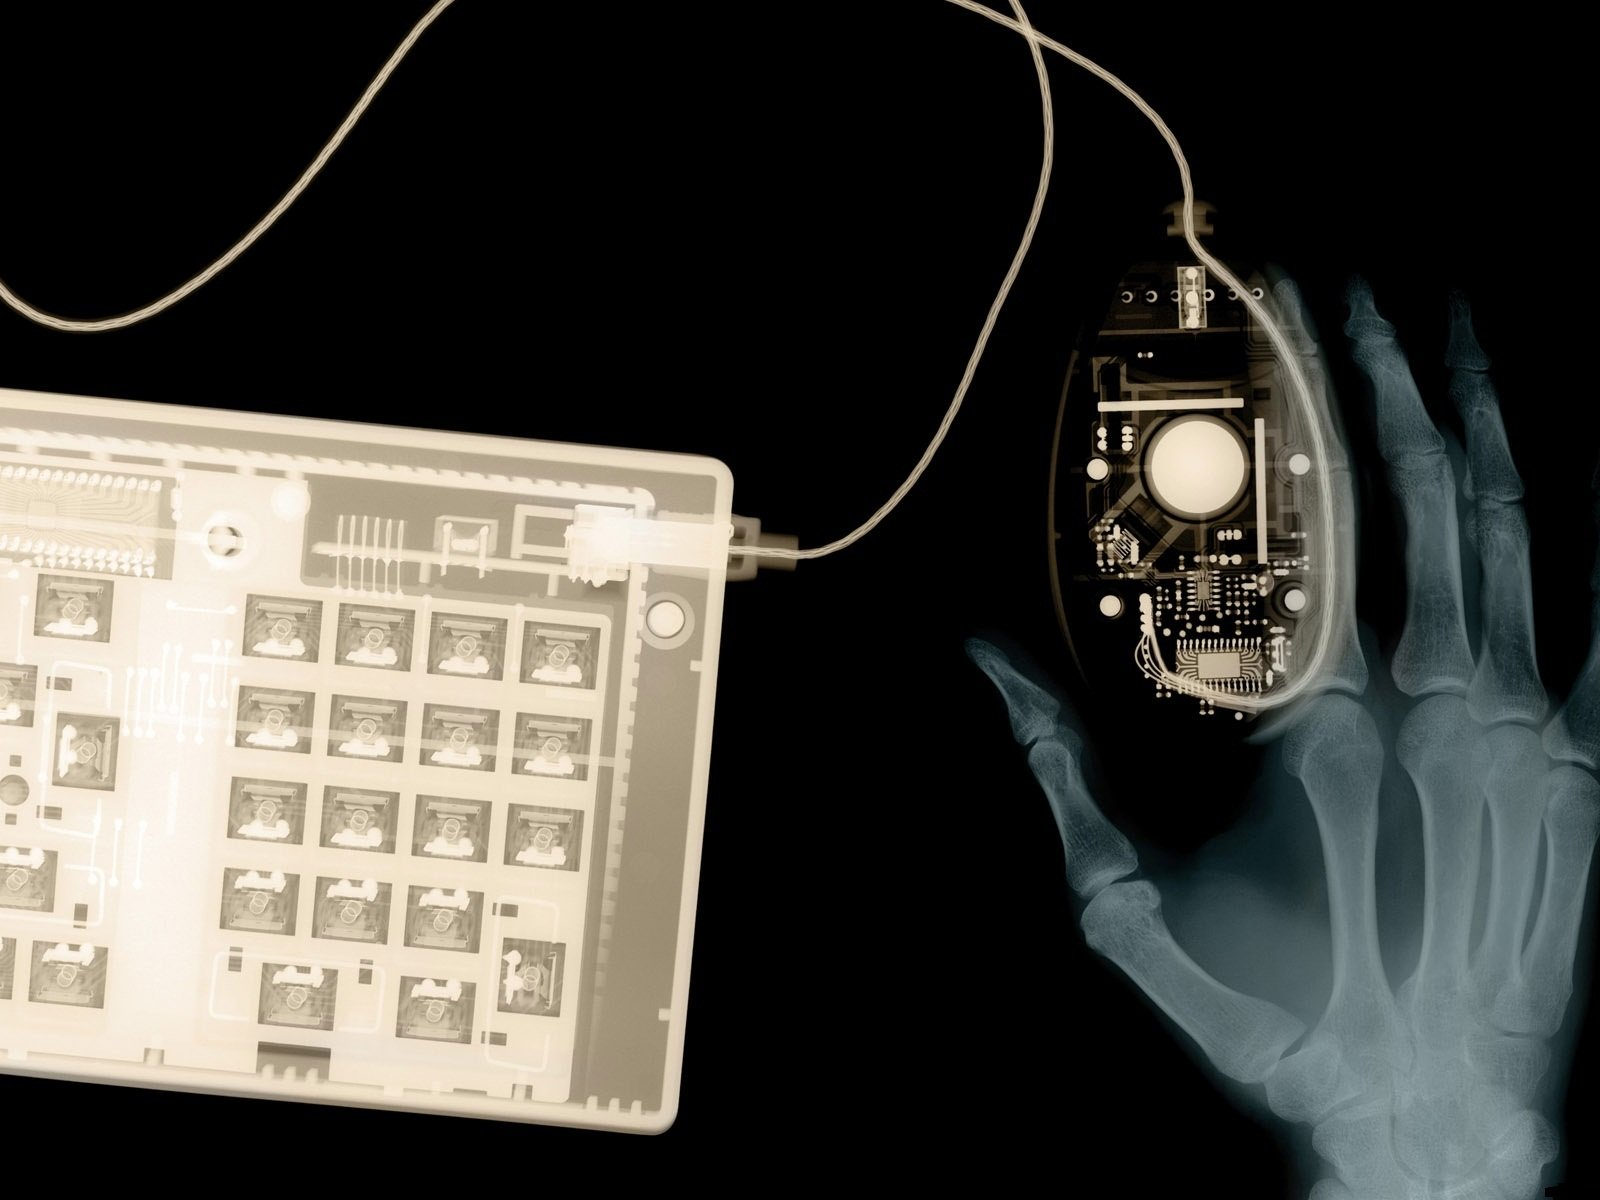 X-rays keyboard and mouse